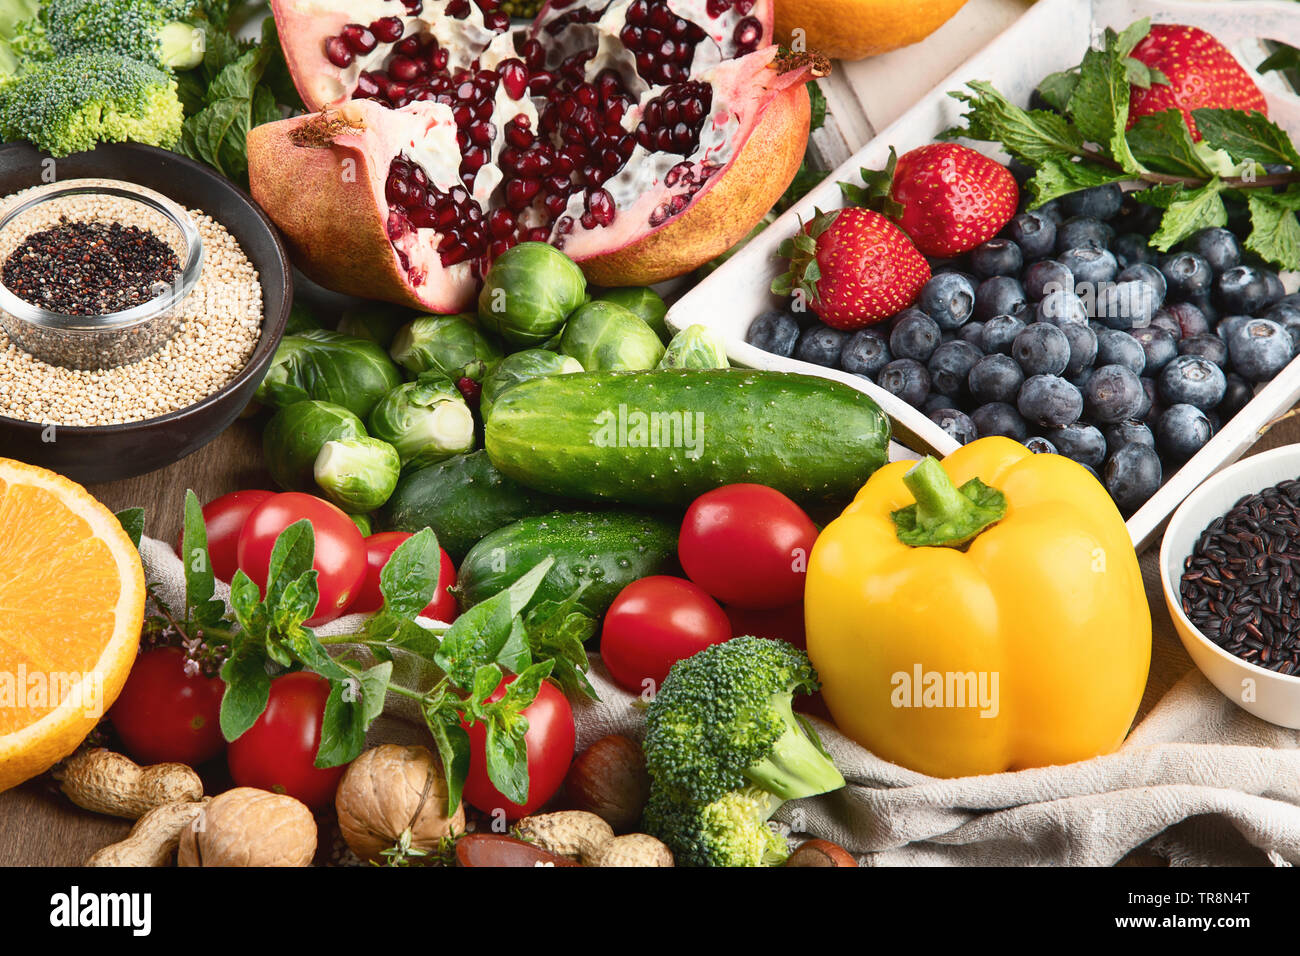 Healthy diet background  Clean and detox eating  Vegan or